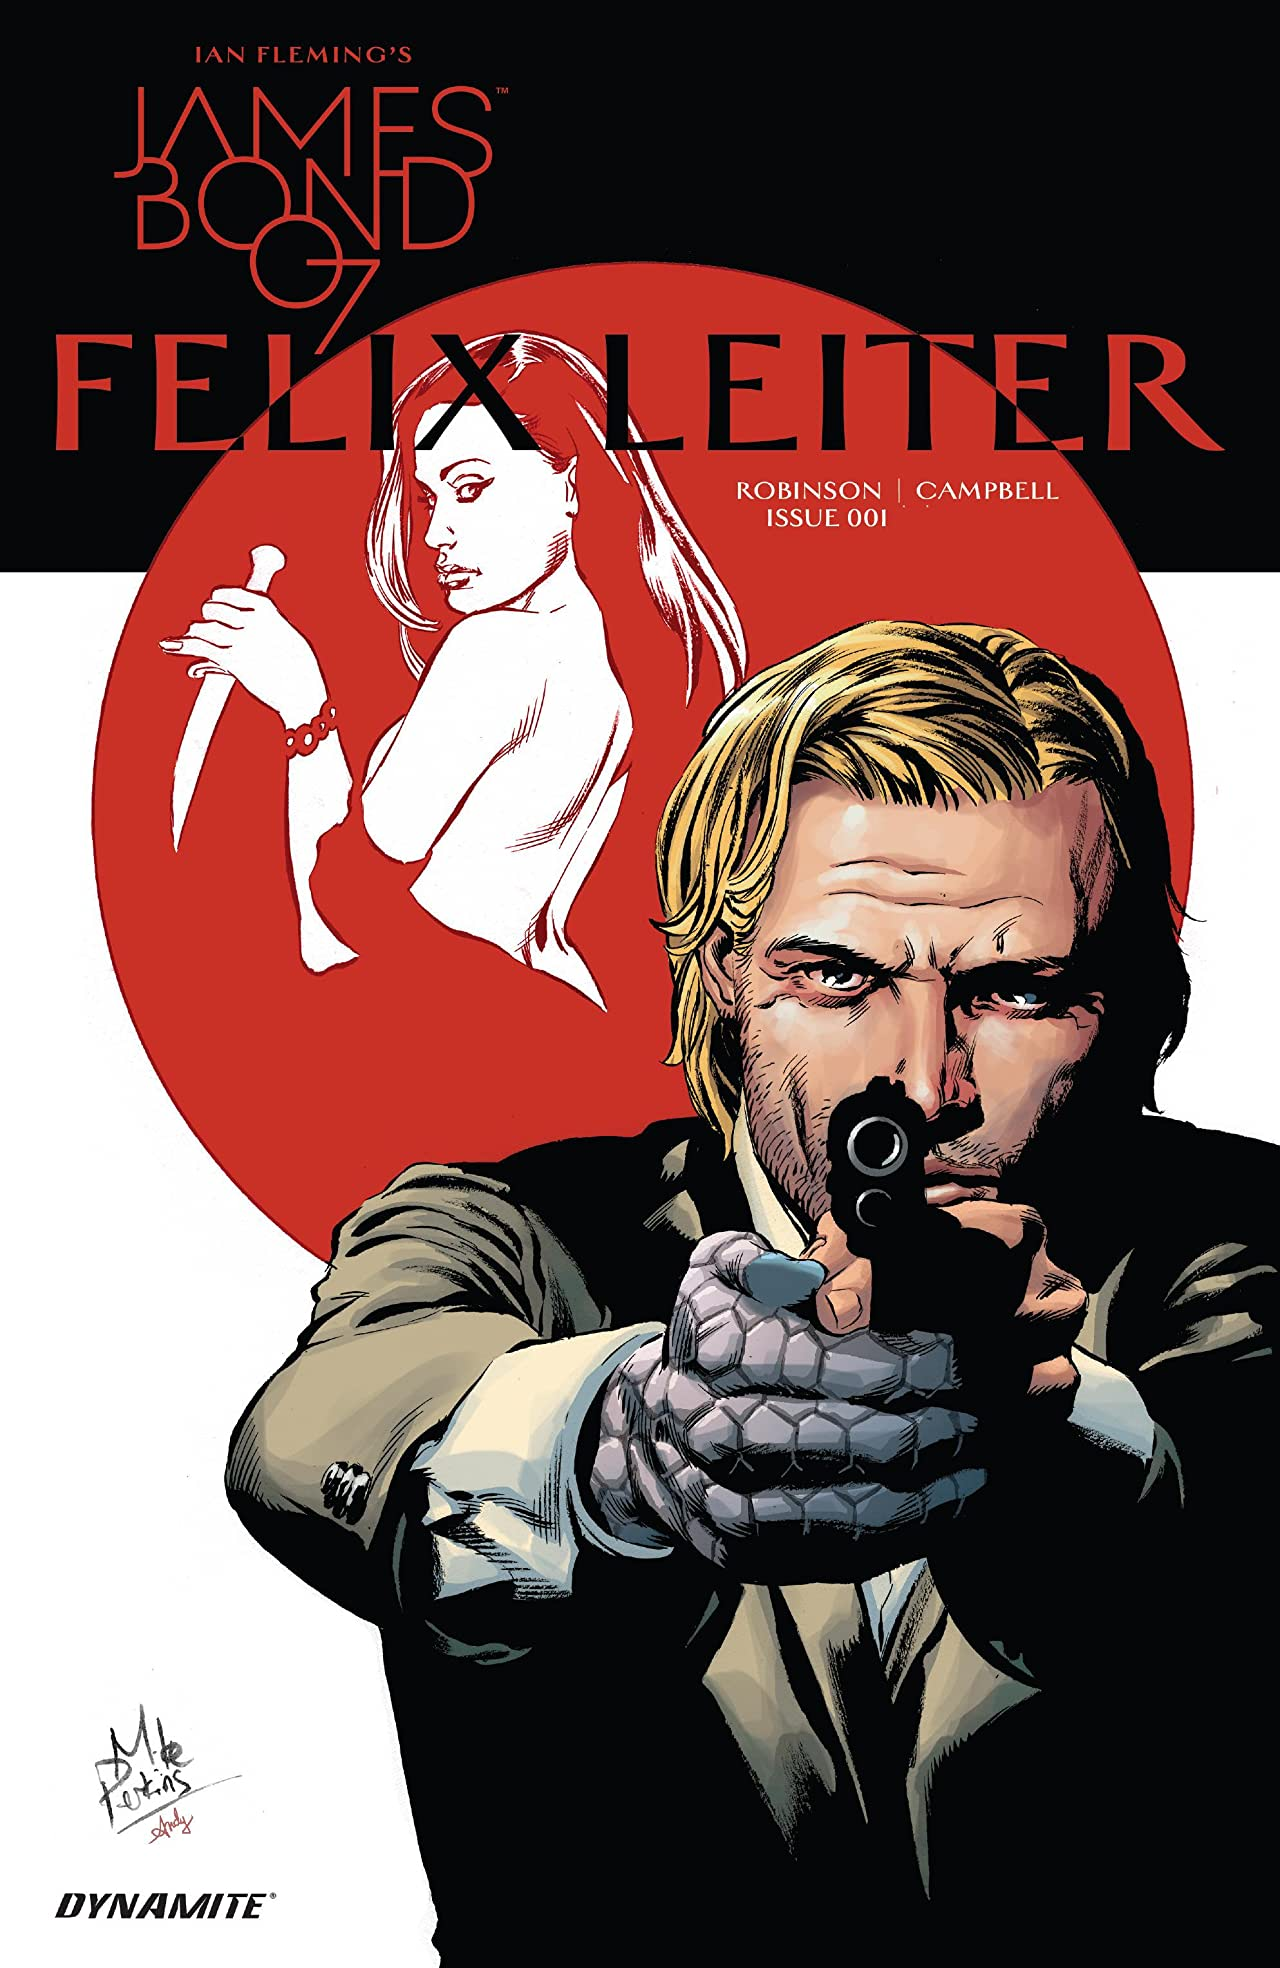 James Bond: Felix Leiter (2017) #1 (of 6)